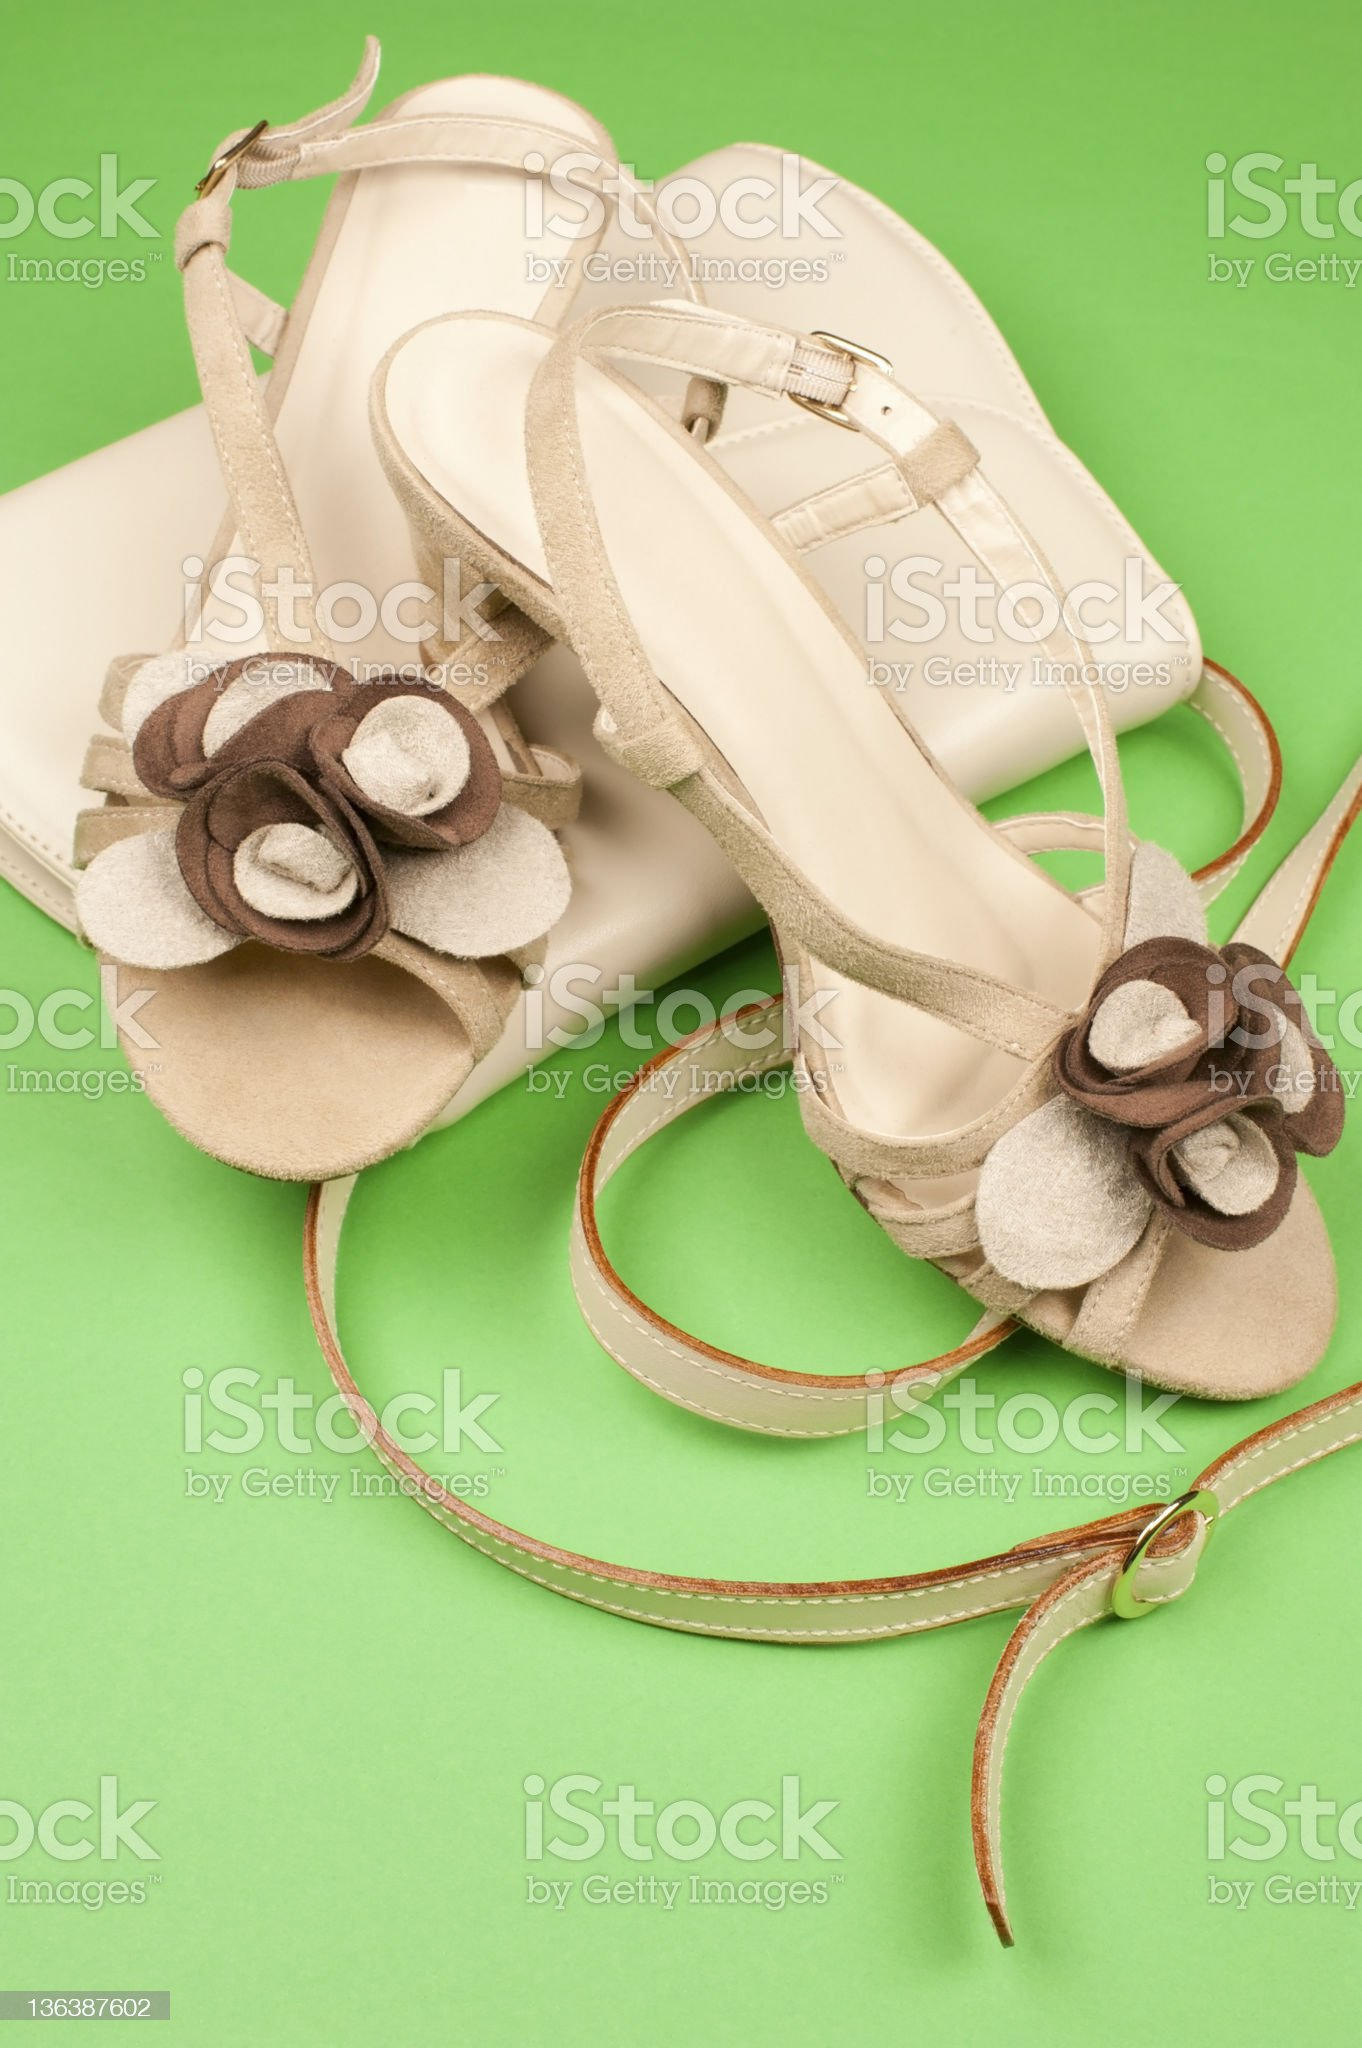 Beige Leather Accessories royalty-free stock photo